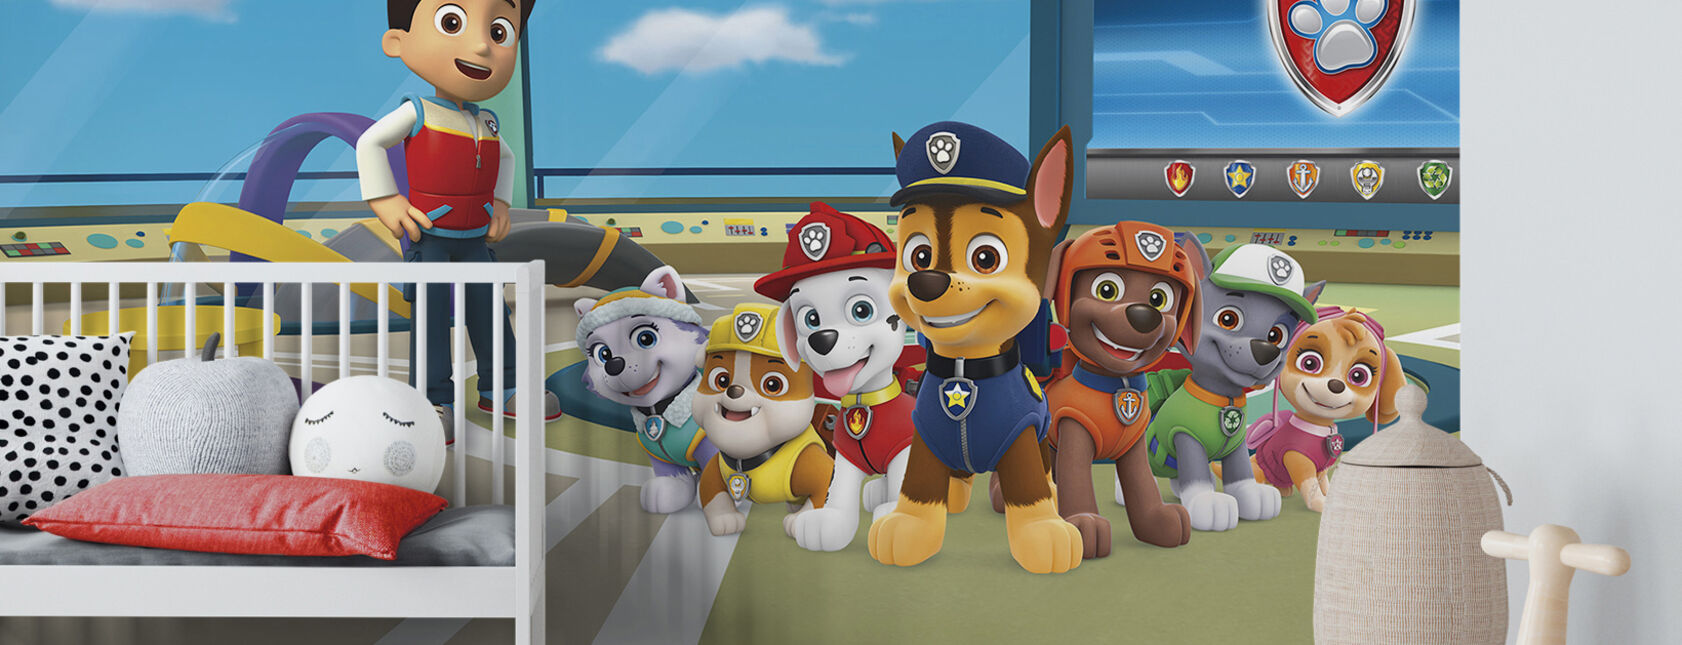 paw patrol beliebte wandmotive photowall. Black Bedroom Furniture Sets. Home Design Ideas